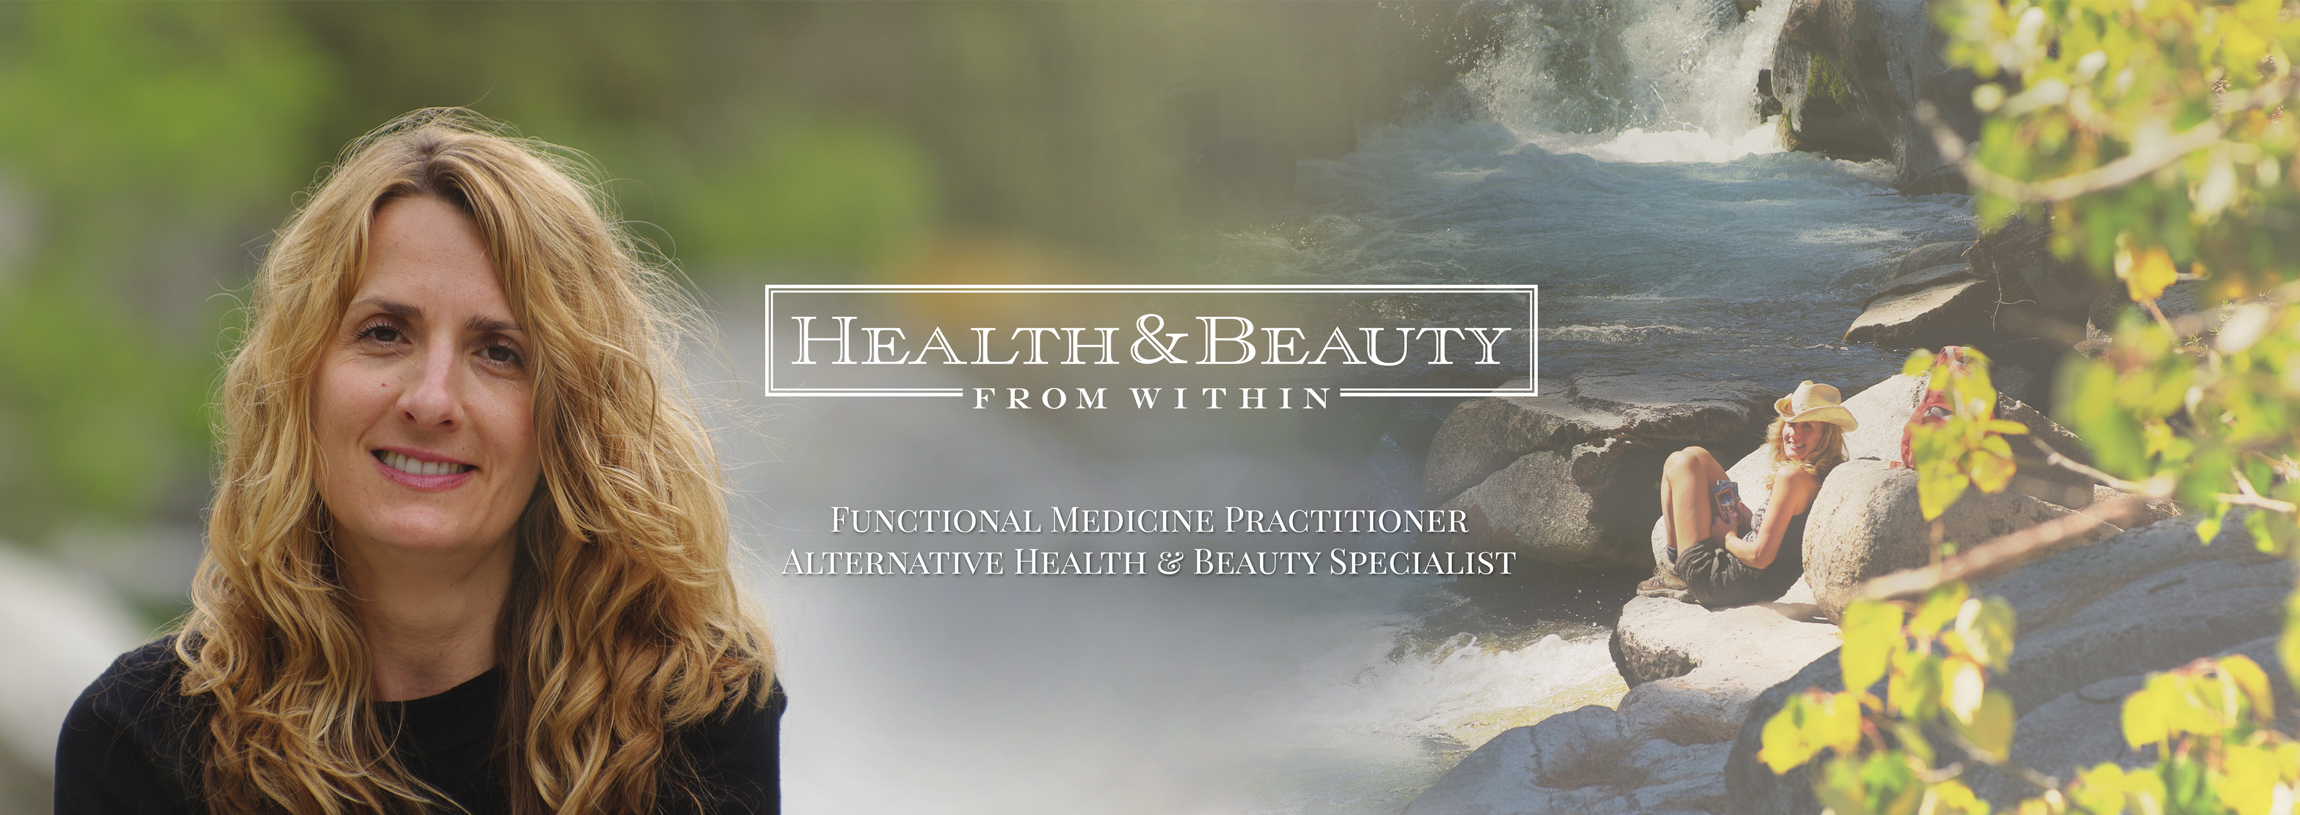 how to become a functional medicine practitioner uk